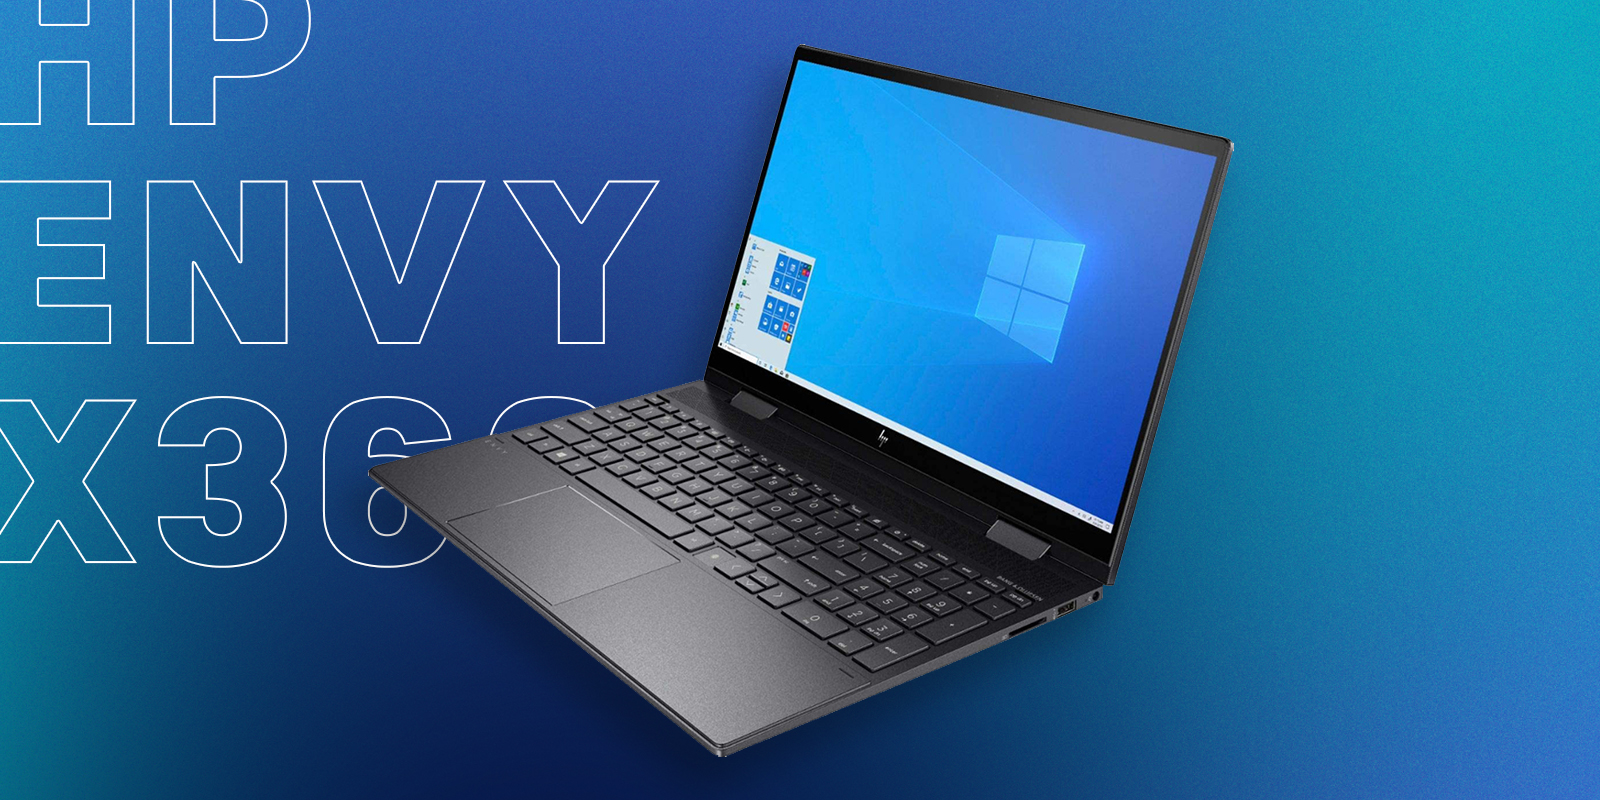 HP Envy x360 Best Budget-Friendly 2 in 1 Laptop for Graphic Design